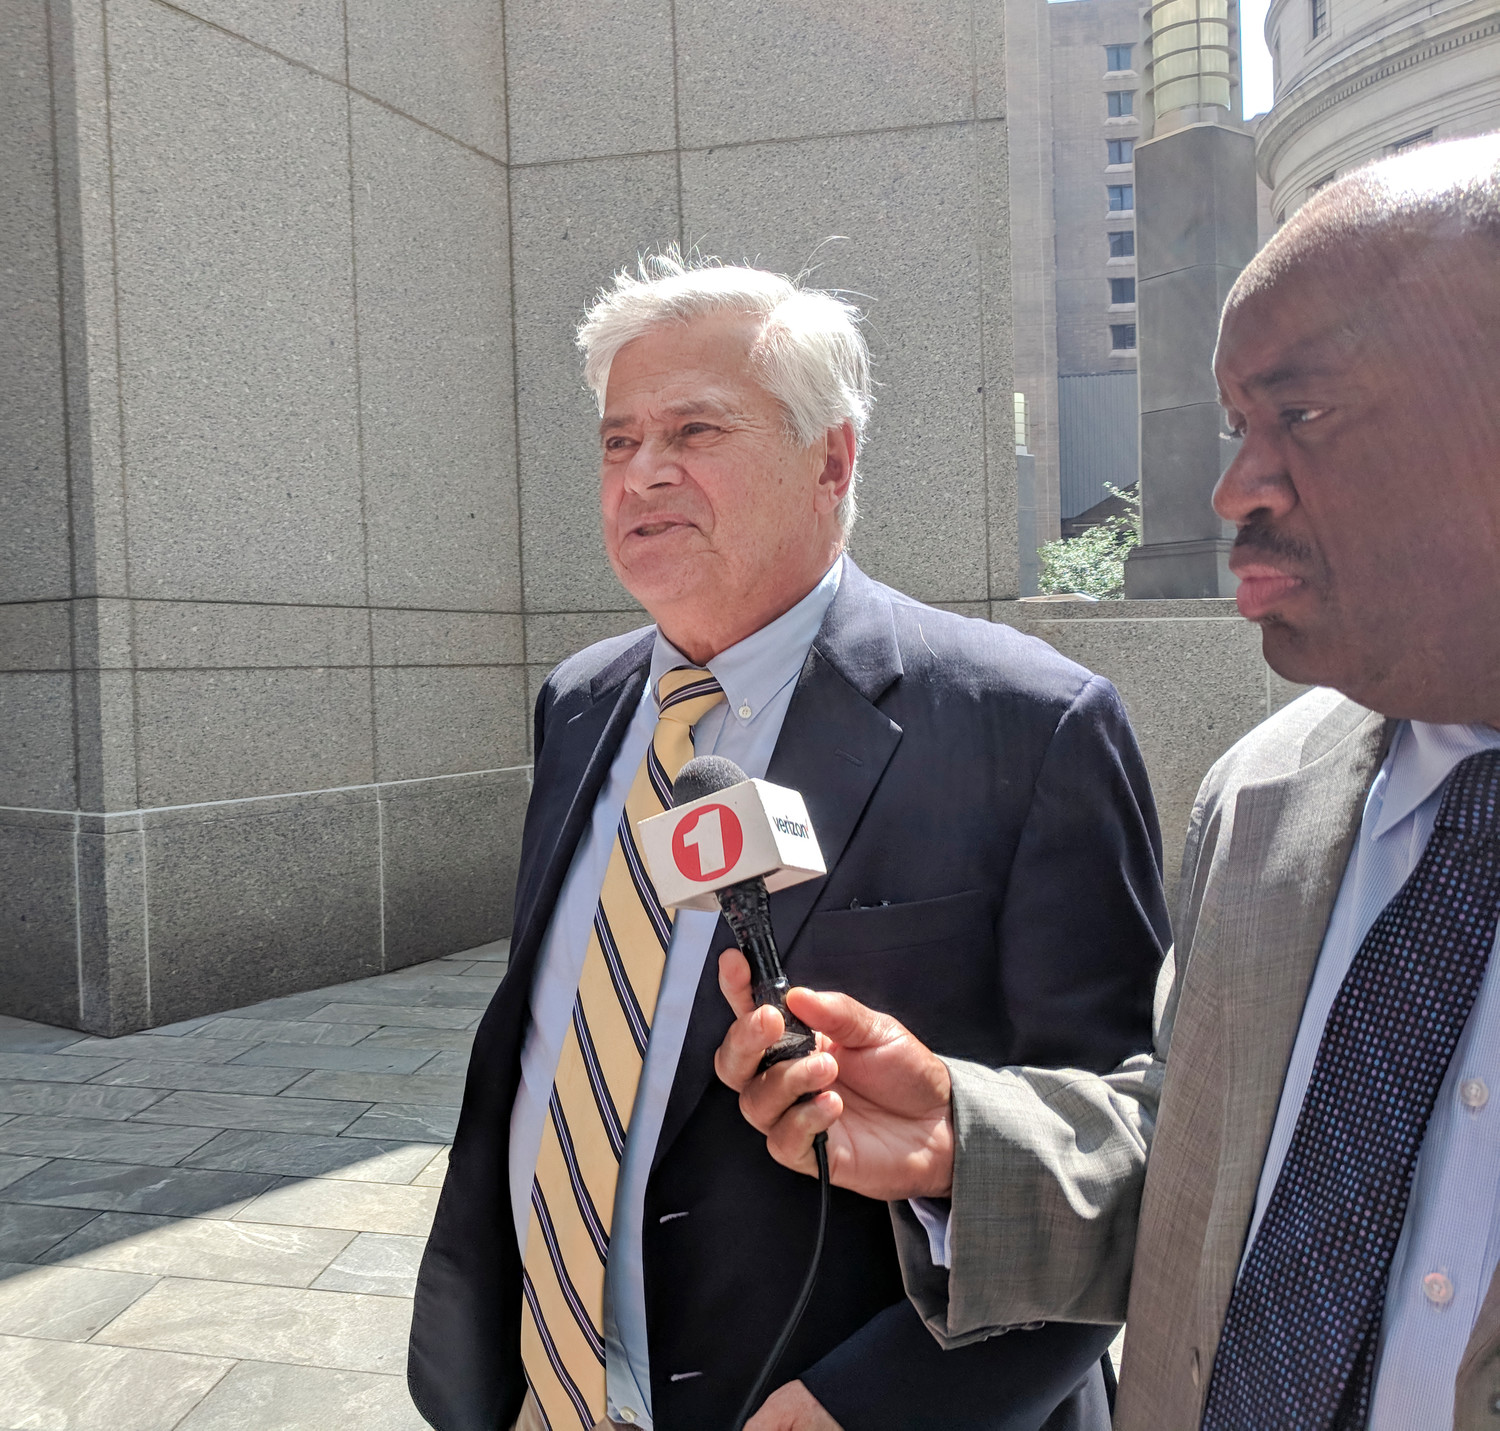 A jury found Dean Skelos, pictured, and his son, Adam, guilty Tuesday after his corruption retrial.